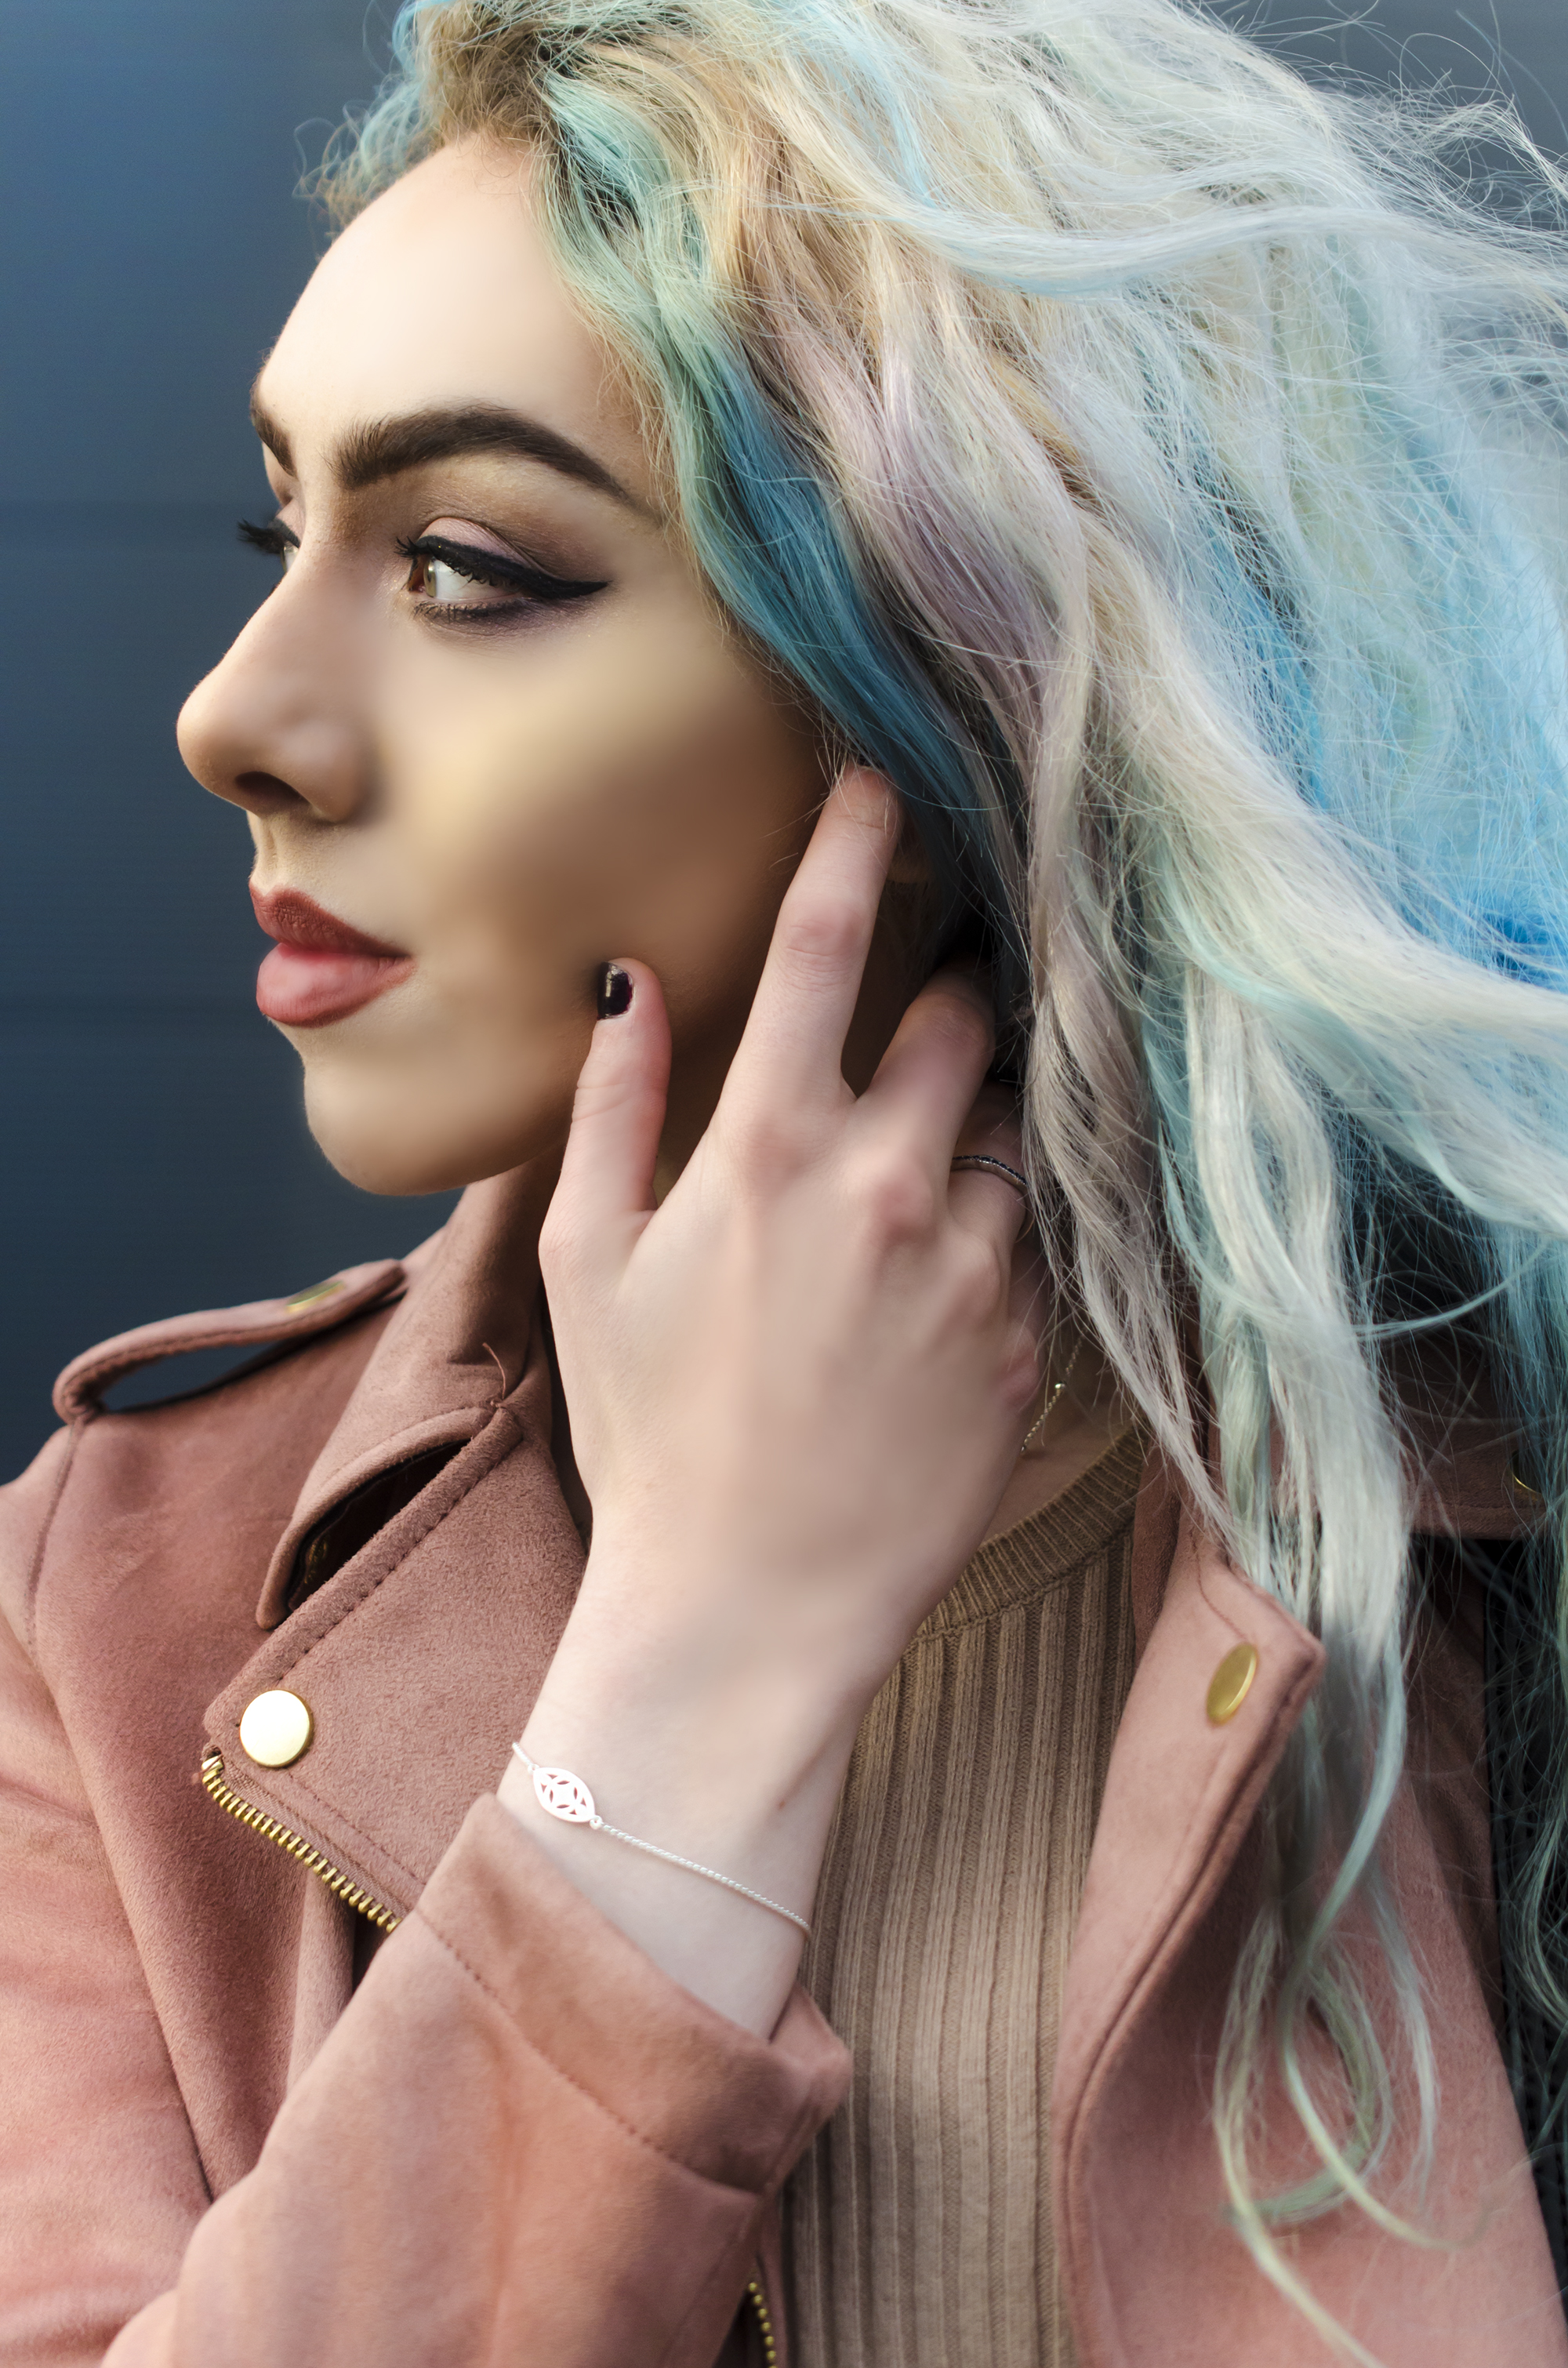 Stephi LaReine fashion blogger Thomas Sabo